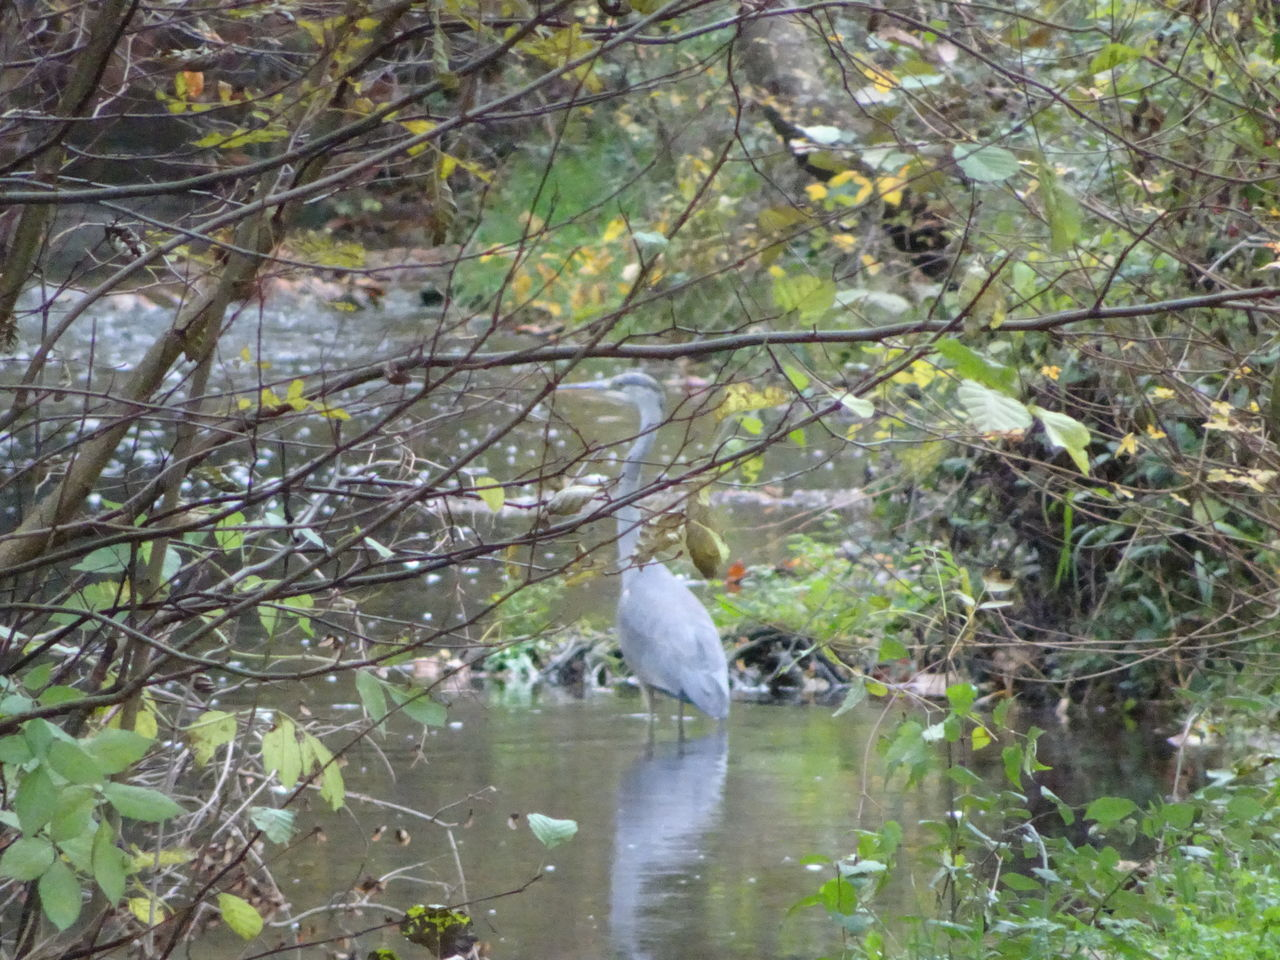 Animal Themes Animal Wildlife Animals In The Wild Bird Day Grey Bird Heron Heron Standing Large Bird Nature No People One Animal Outdoors Reflection Tree Water